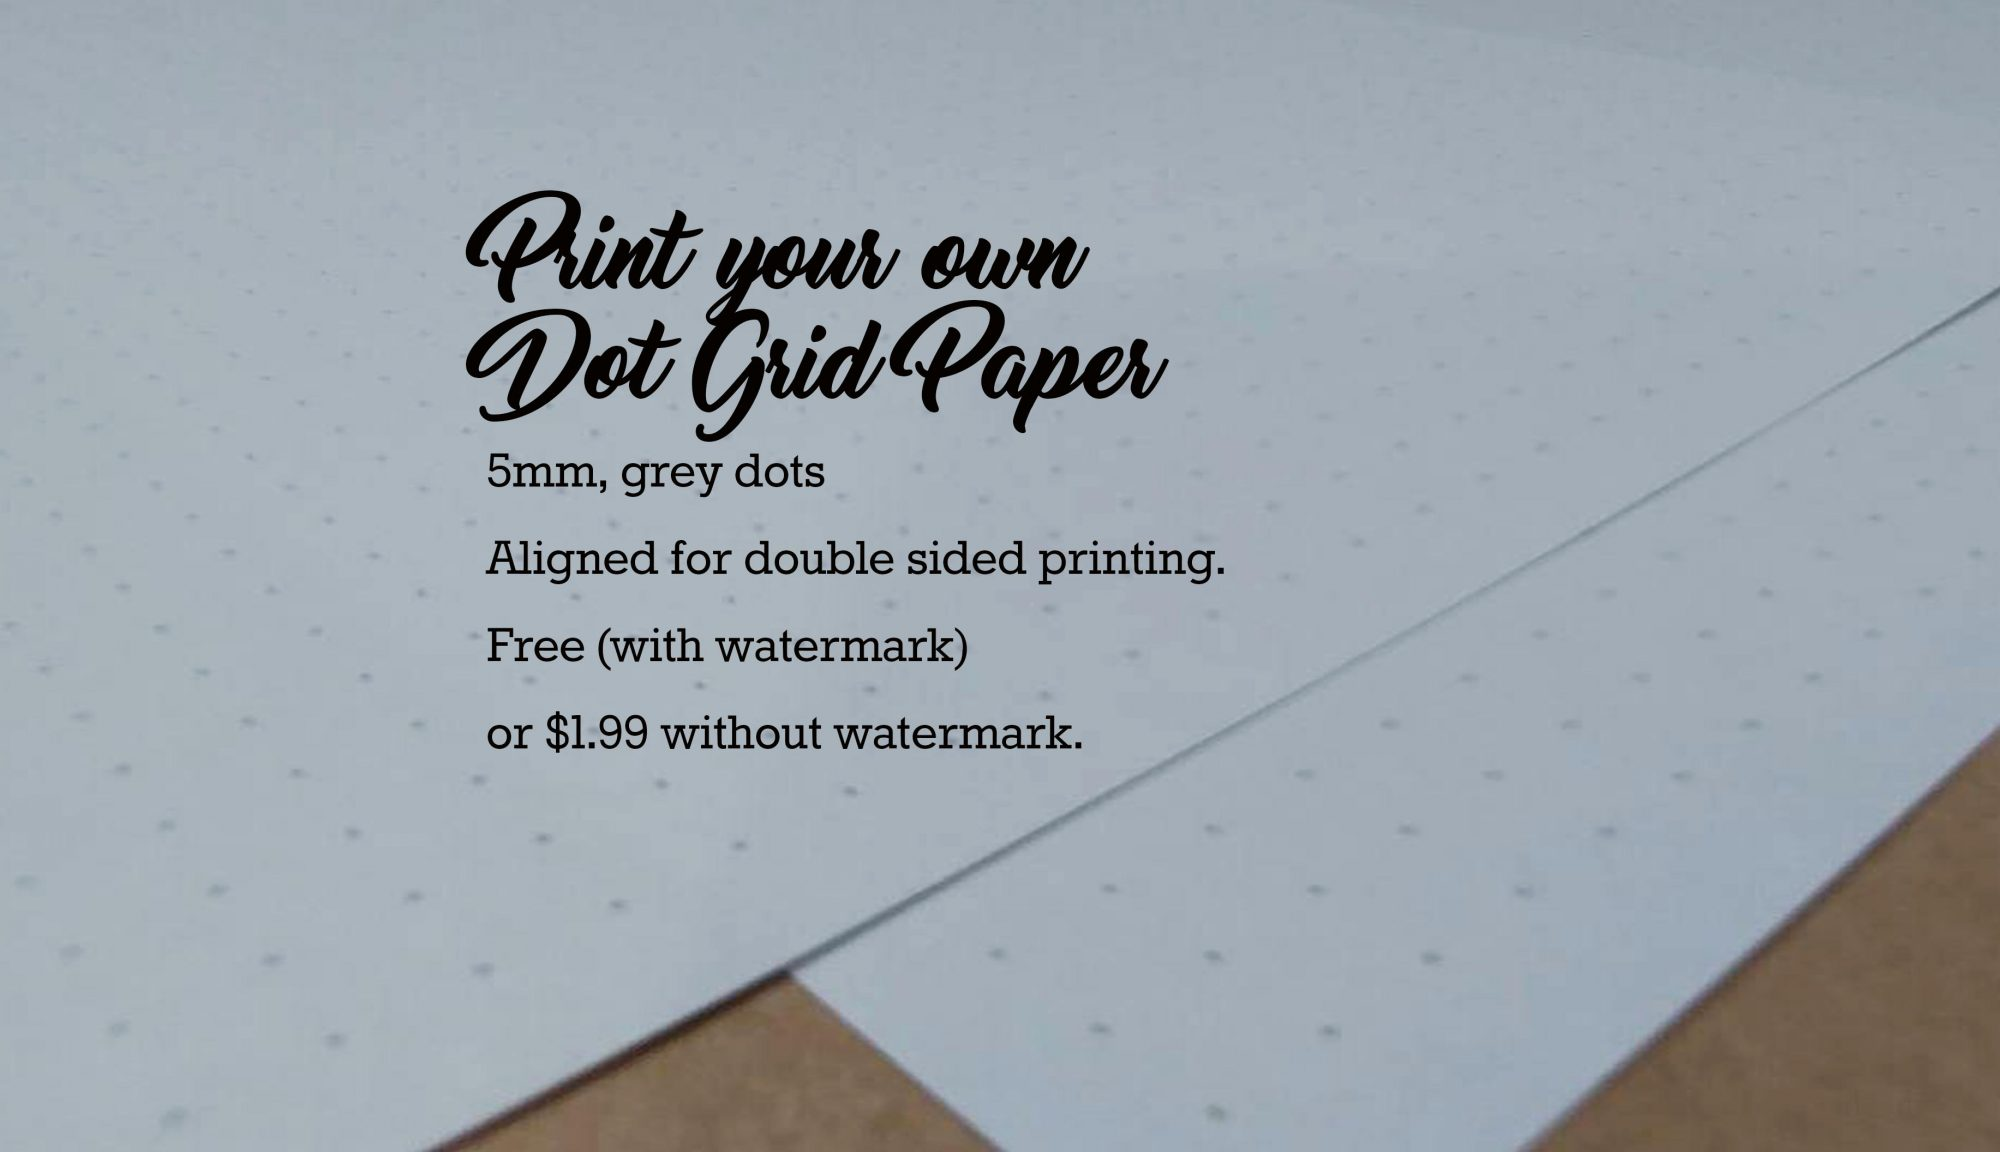 image about Free Printable Dot Grid Paper called Cost-free Printable Dot Grid Paper PDF - Letter Sizing and A5